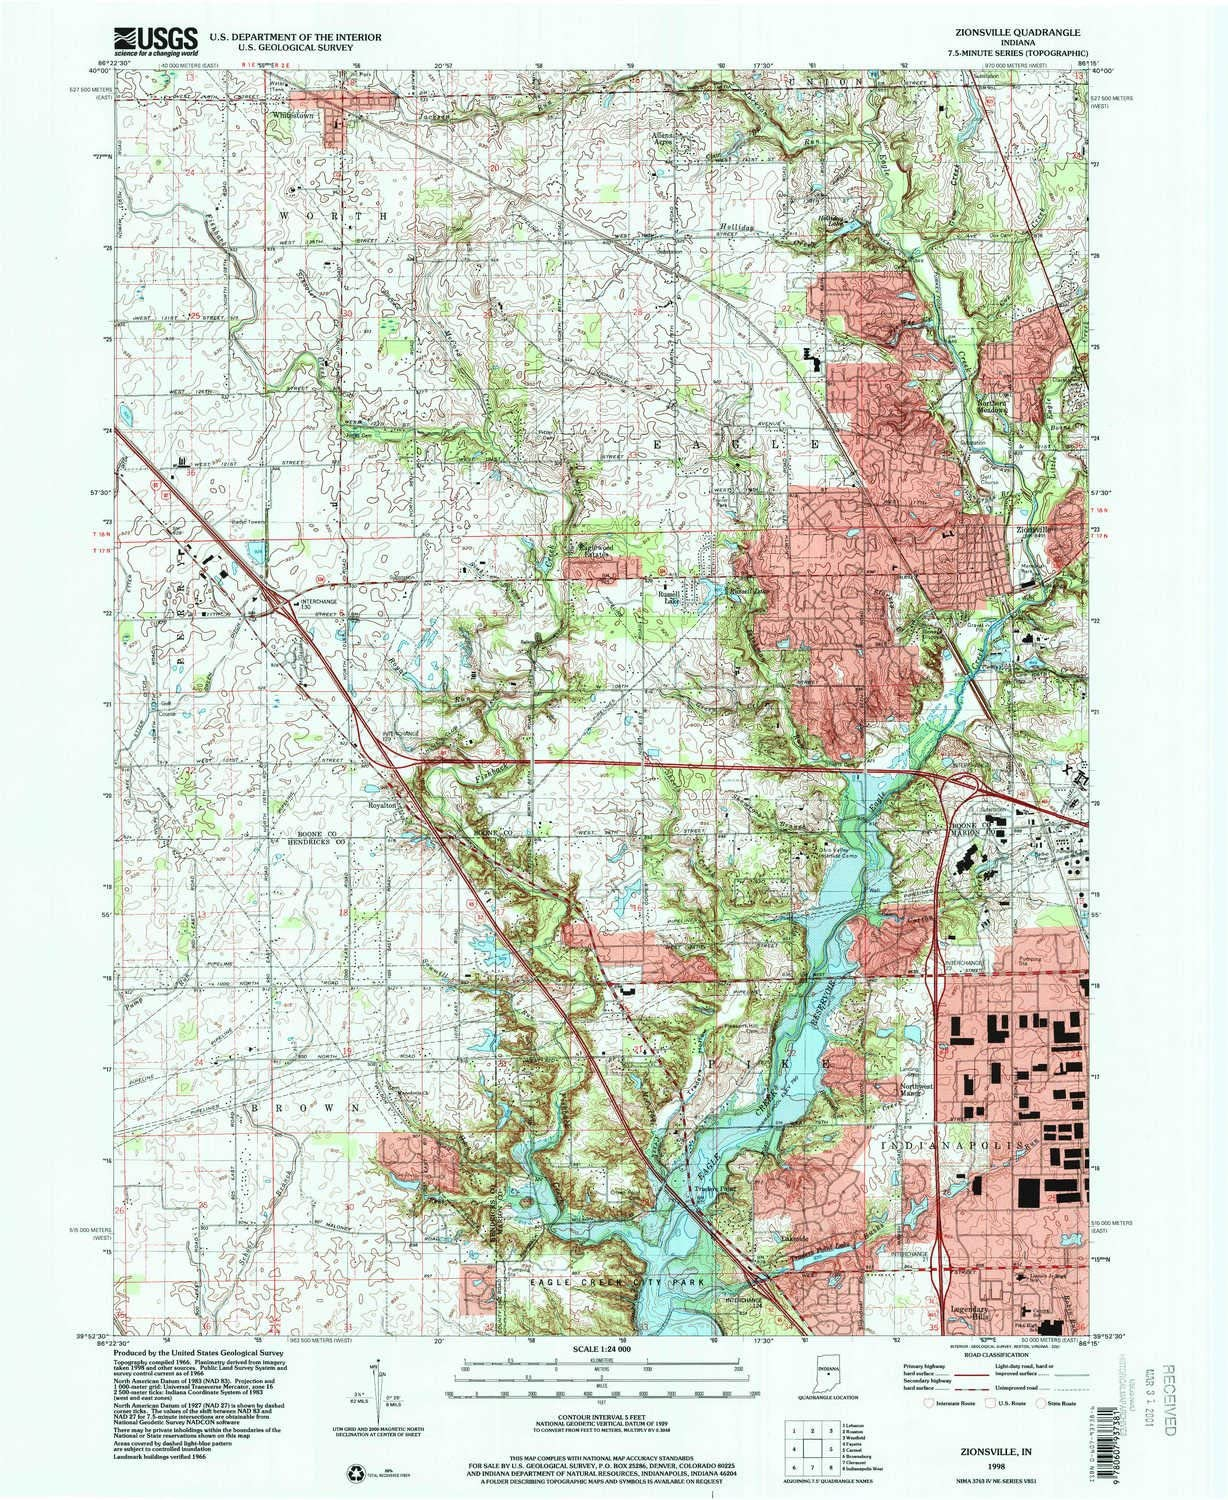 7.5 X 7.5 Minute 1:24000 Scale Historical 26.7 x 21.5 in YellowMaps Wildomar CA topo map 1997 Updated 2000